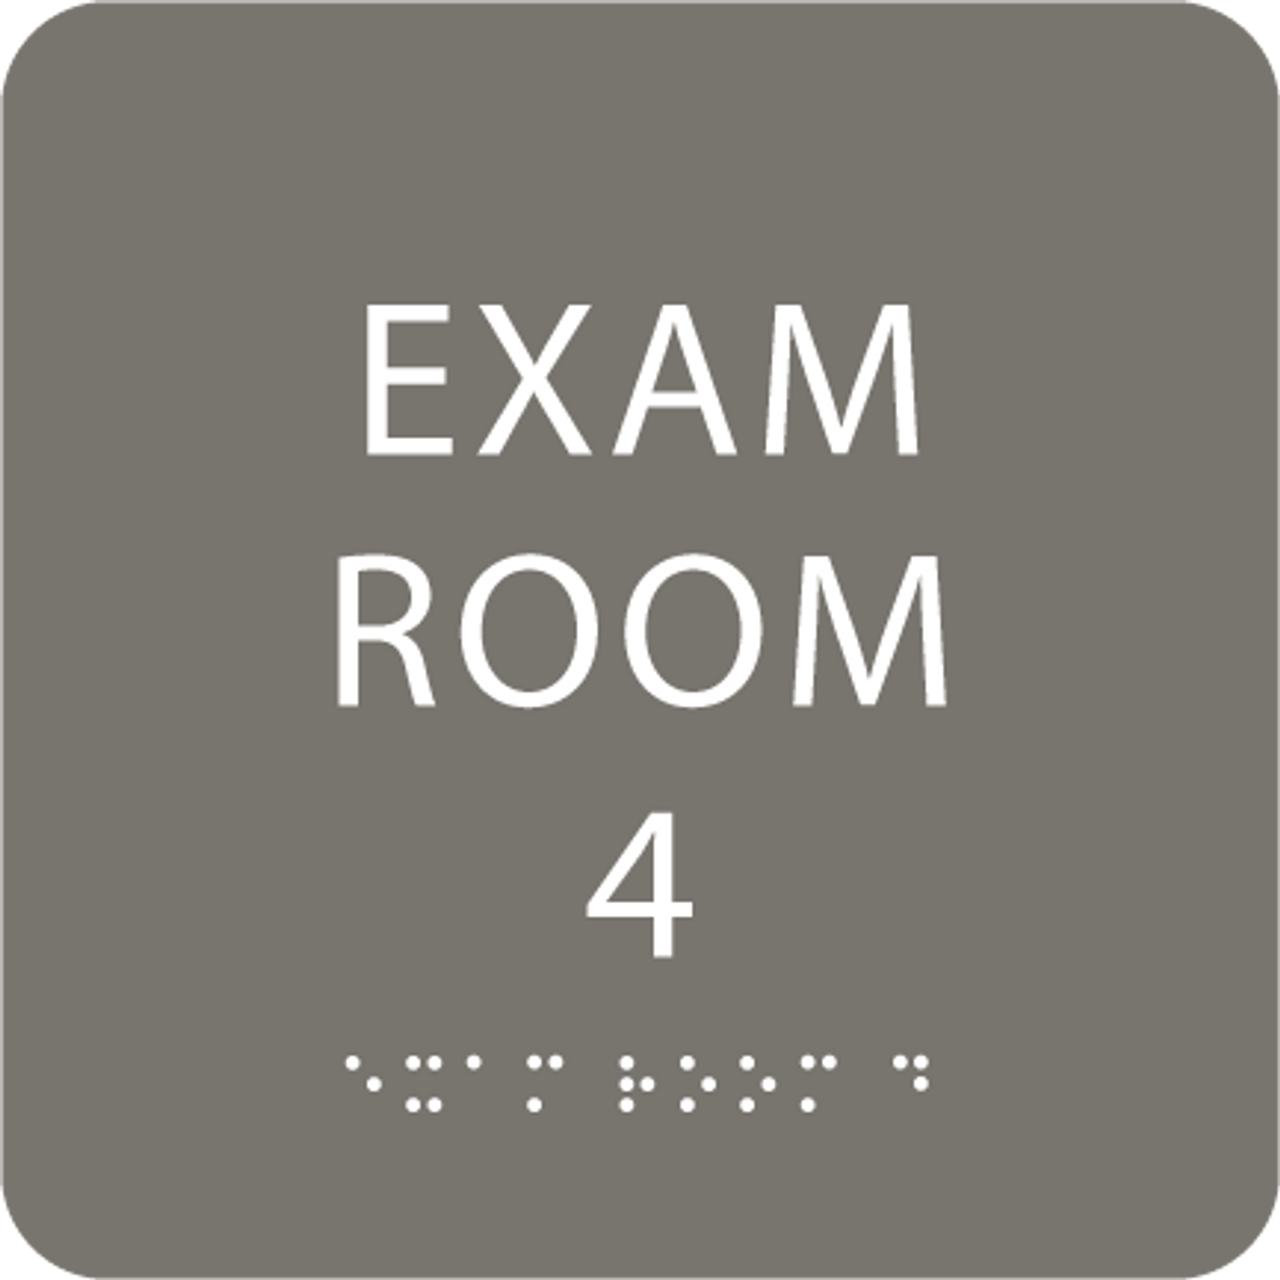 Dark Grey Exam Room 4 ADA Sign